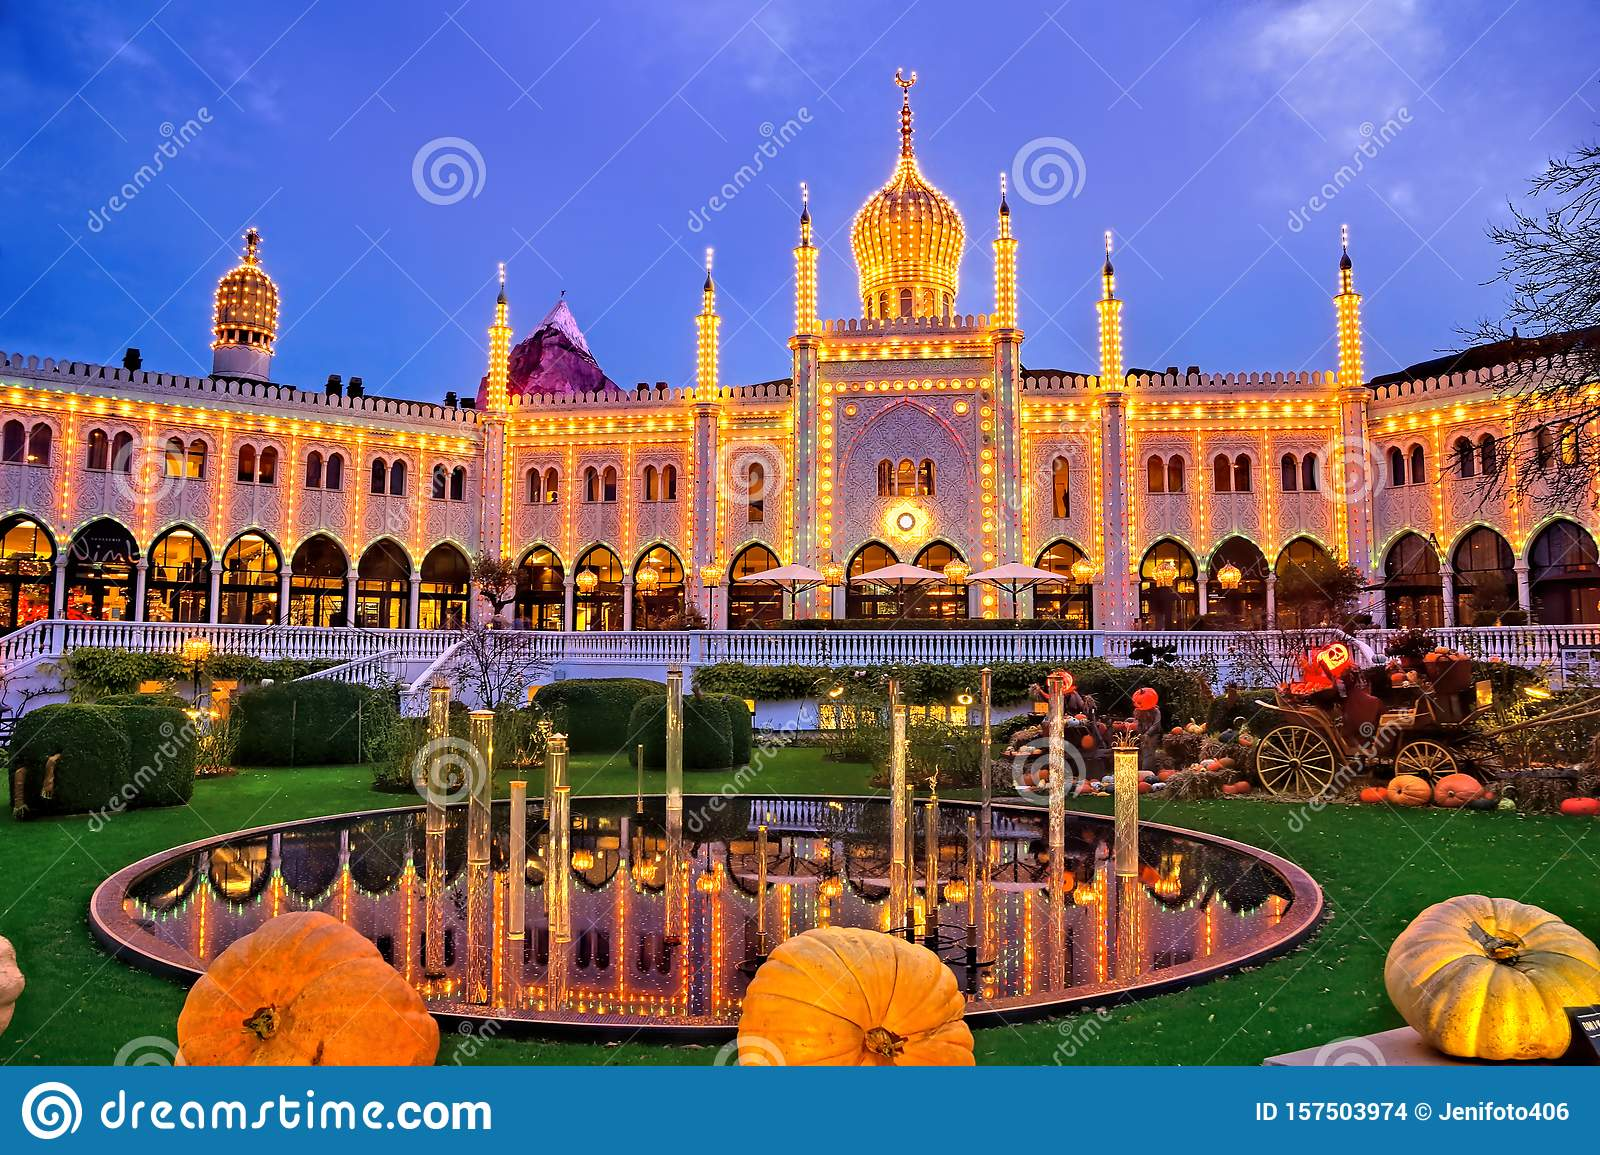 Tivoli Gardens During Halloween With Pumpkins Copenhagen Denmark Stock Photo Image Of Denmark Dome 157503974